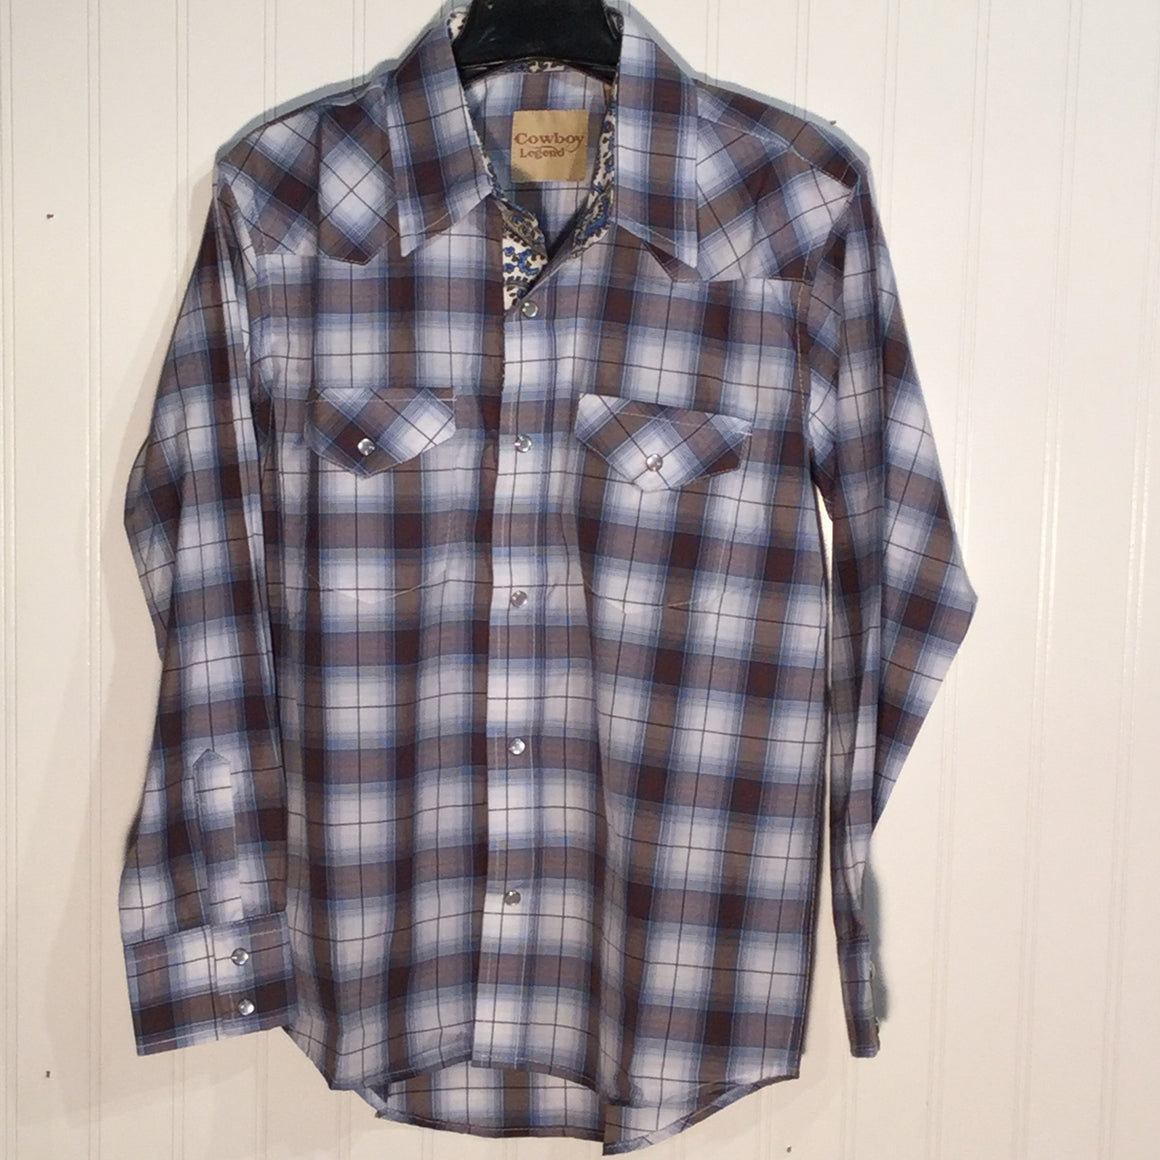 Cowboy Legend Boys Plaid Shirts Blue - Kerlin's Western and Work Wear  - 1